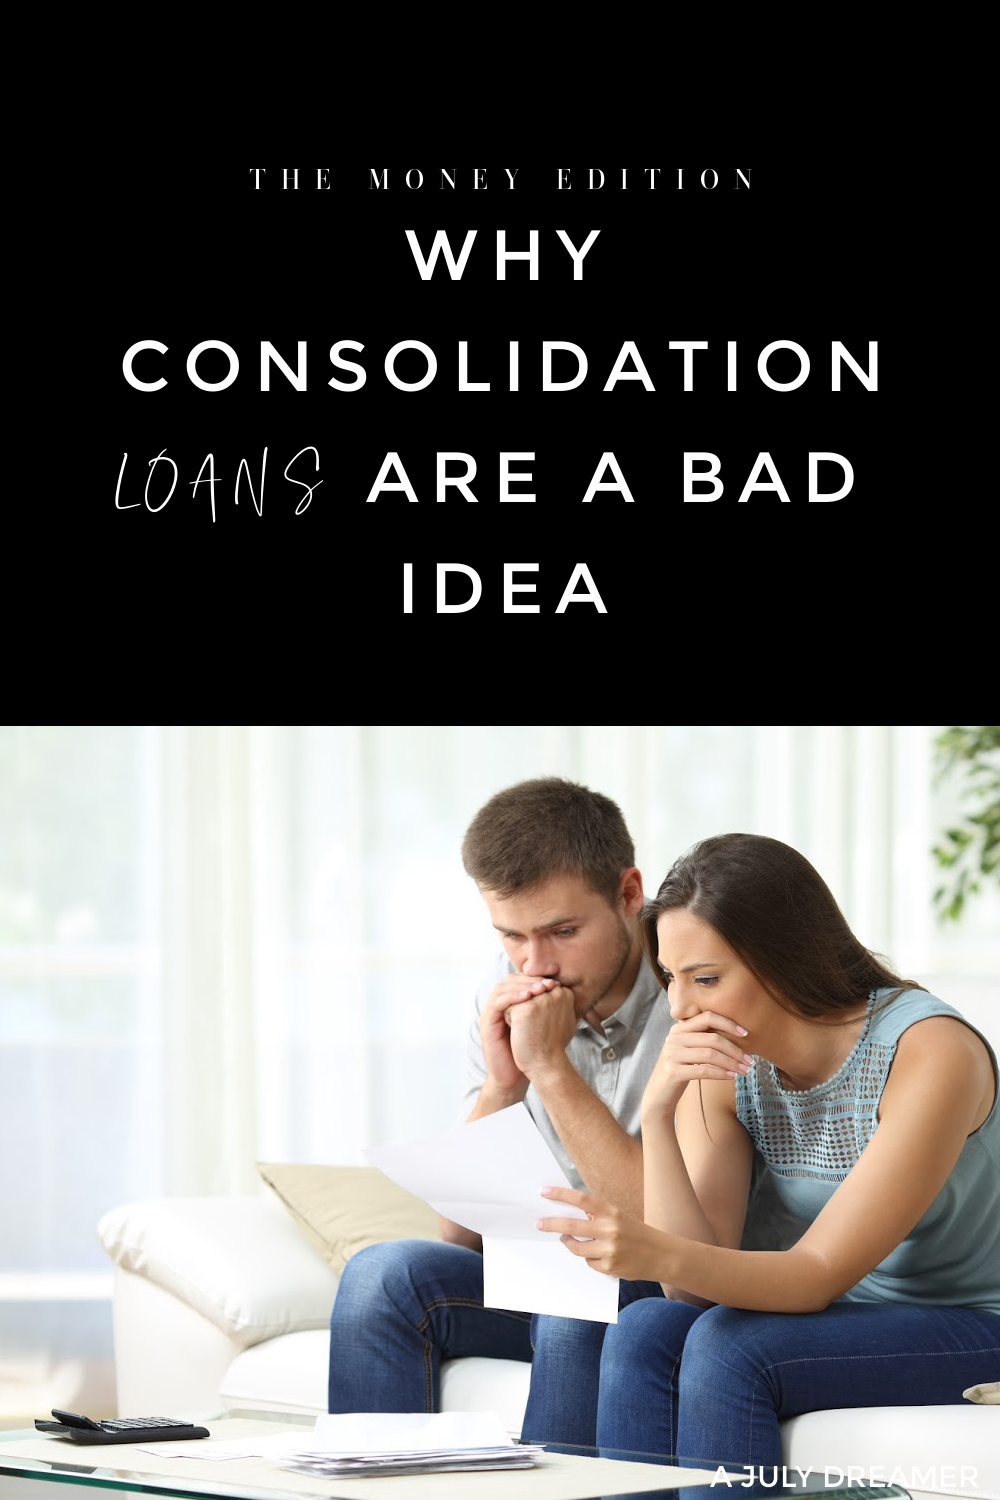 Is consolidating your debt ever a good idea? In my personal opinion it is not, its just another way to keep you in debt for longer than you need to be. When I finished university, I finished debt that had almost nothing to do with my studies but I was fortunate enough to get a job before I even graduated.